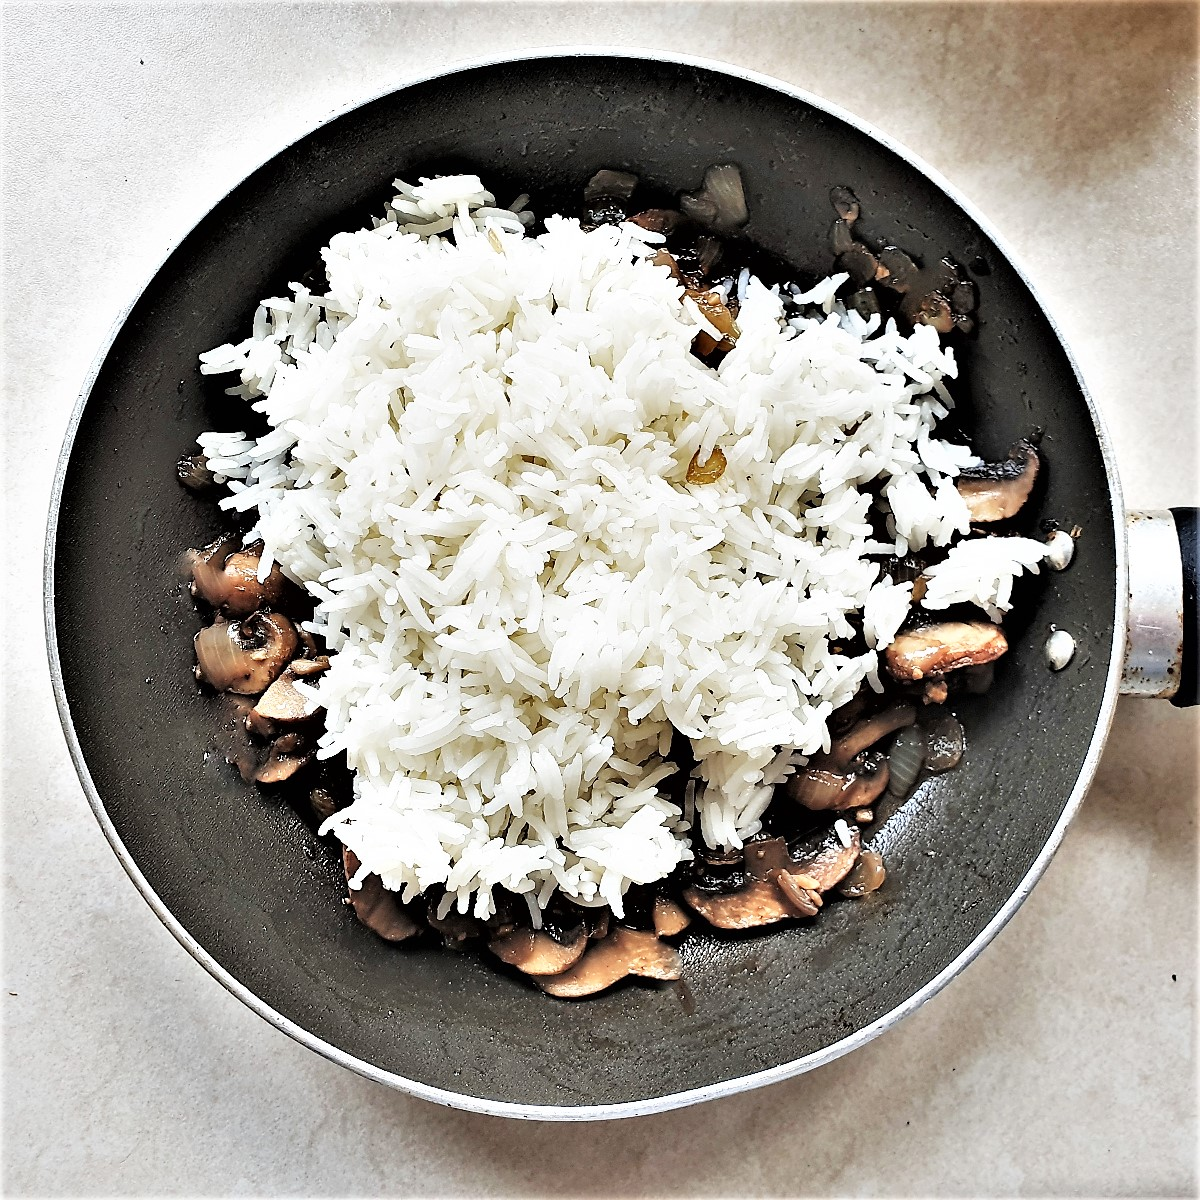 Rice being added to fried mushrooms and onions.